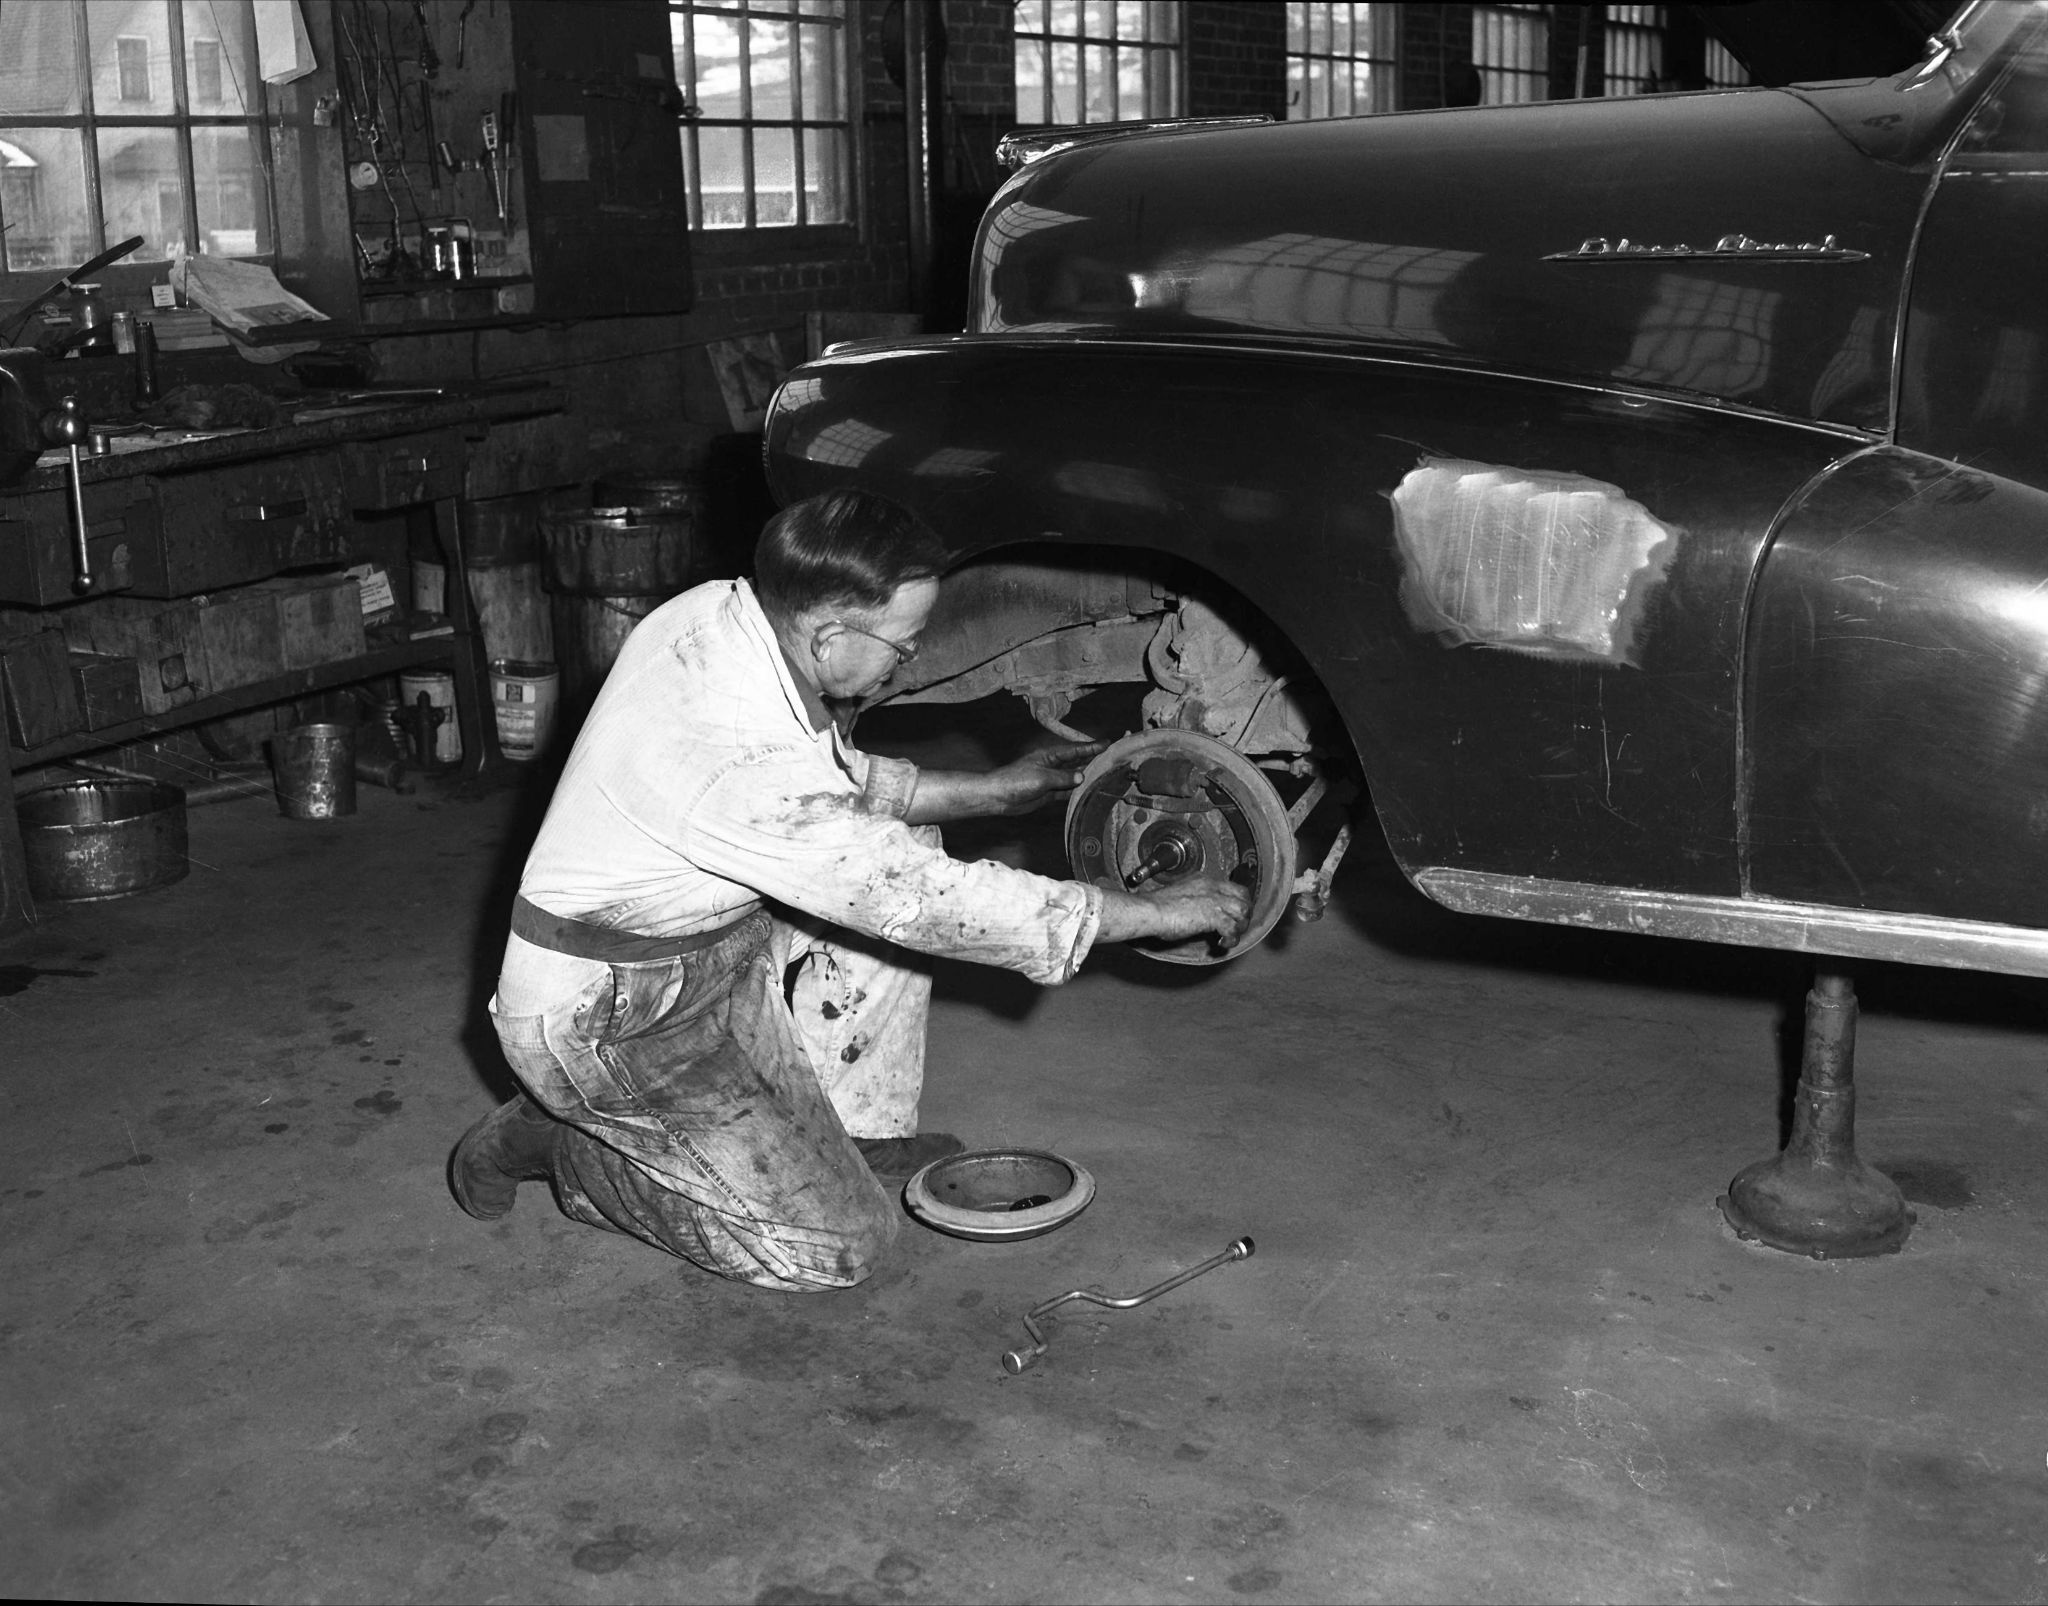 Back in those halcyon years of auto repairing, the life the car ...